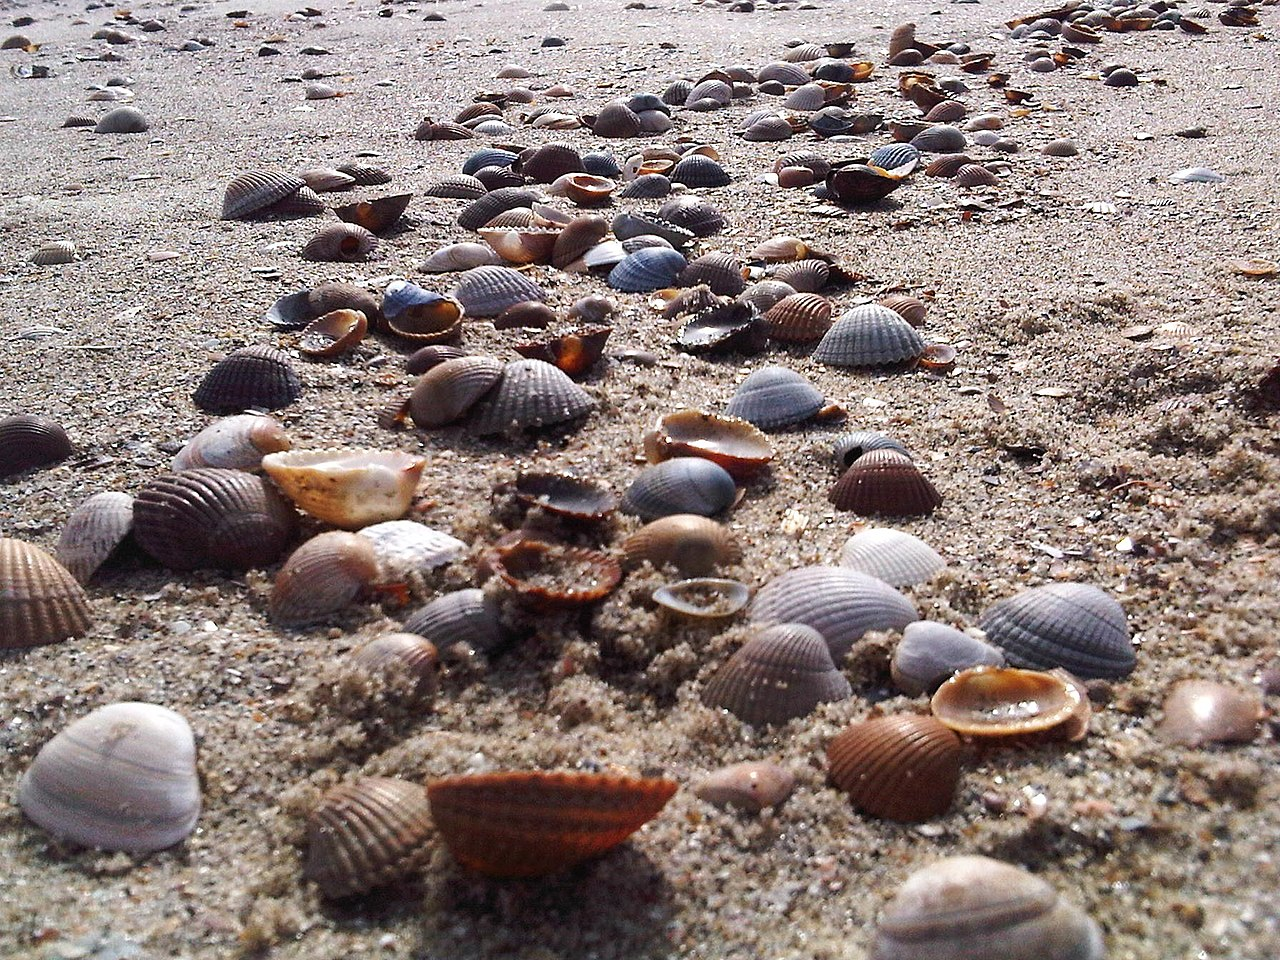 1280px-Shells_on_a_beach_in_Holland.jpg